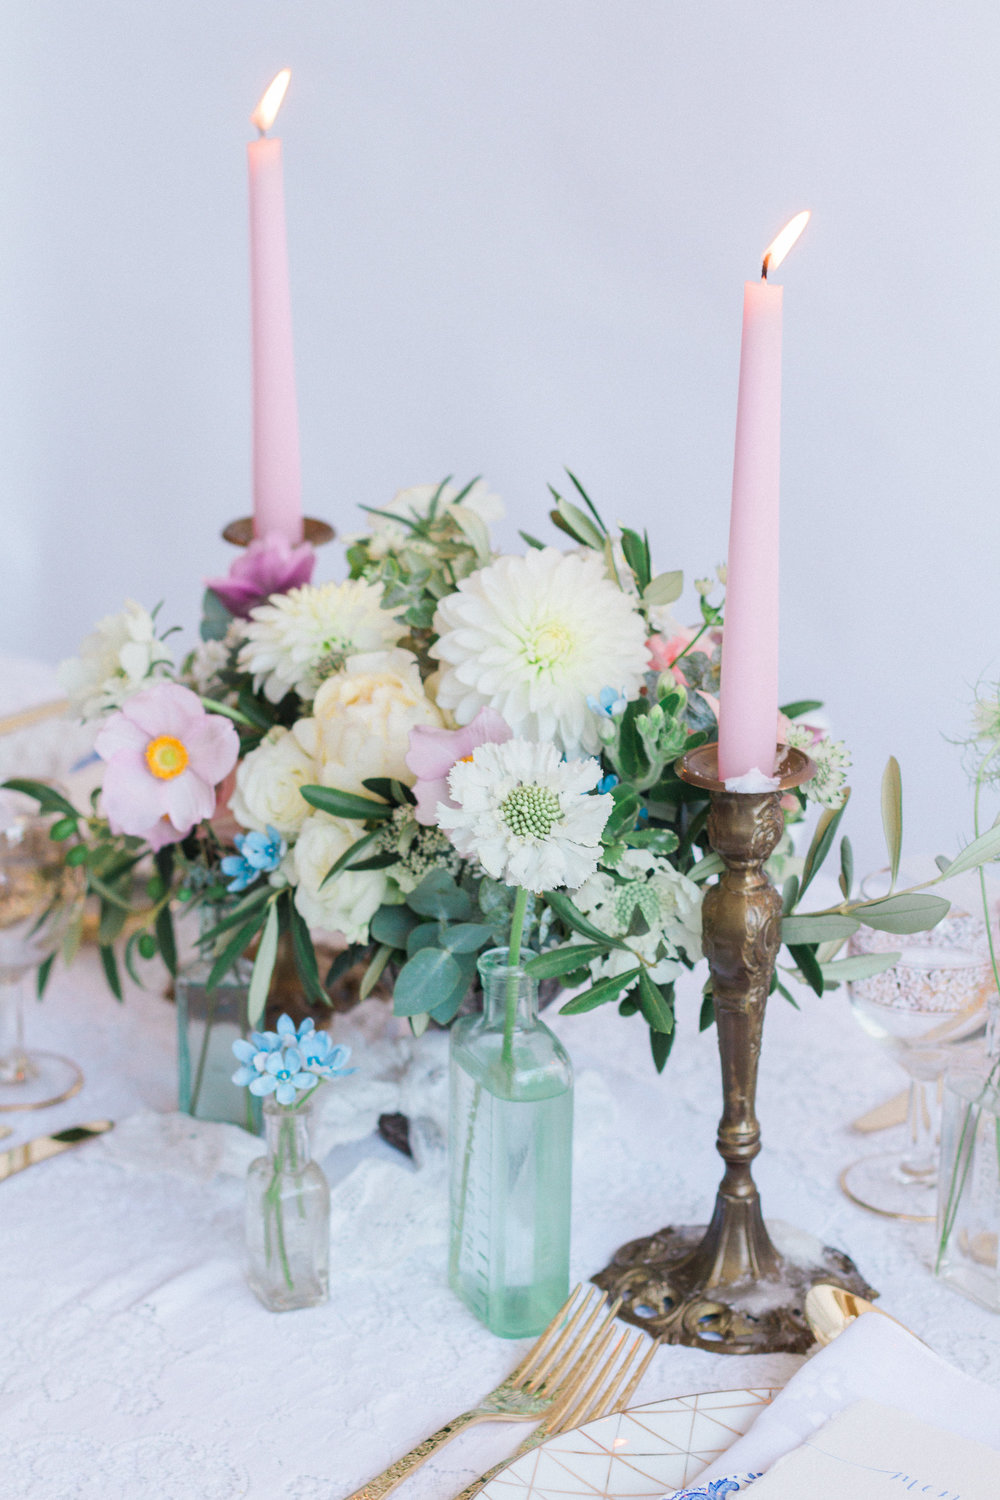 Vintage Amy Wedding Styling-Beautiful Romantic Vintage Wedding Table-Kent and London